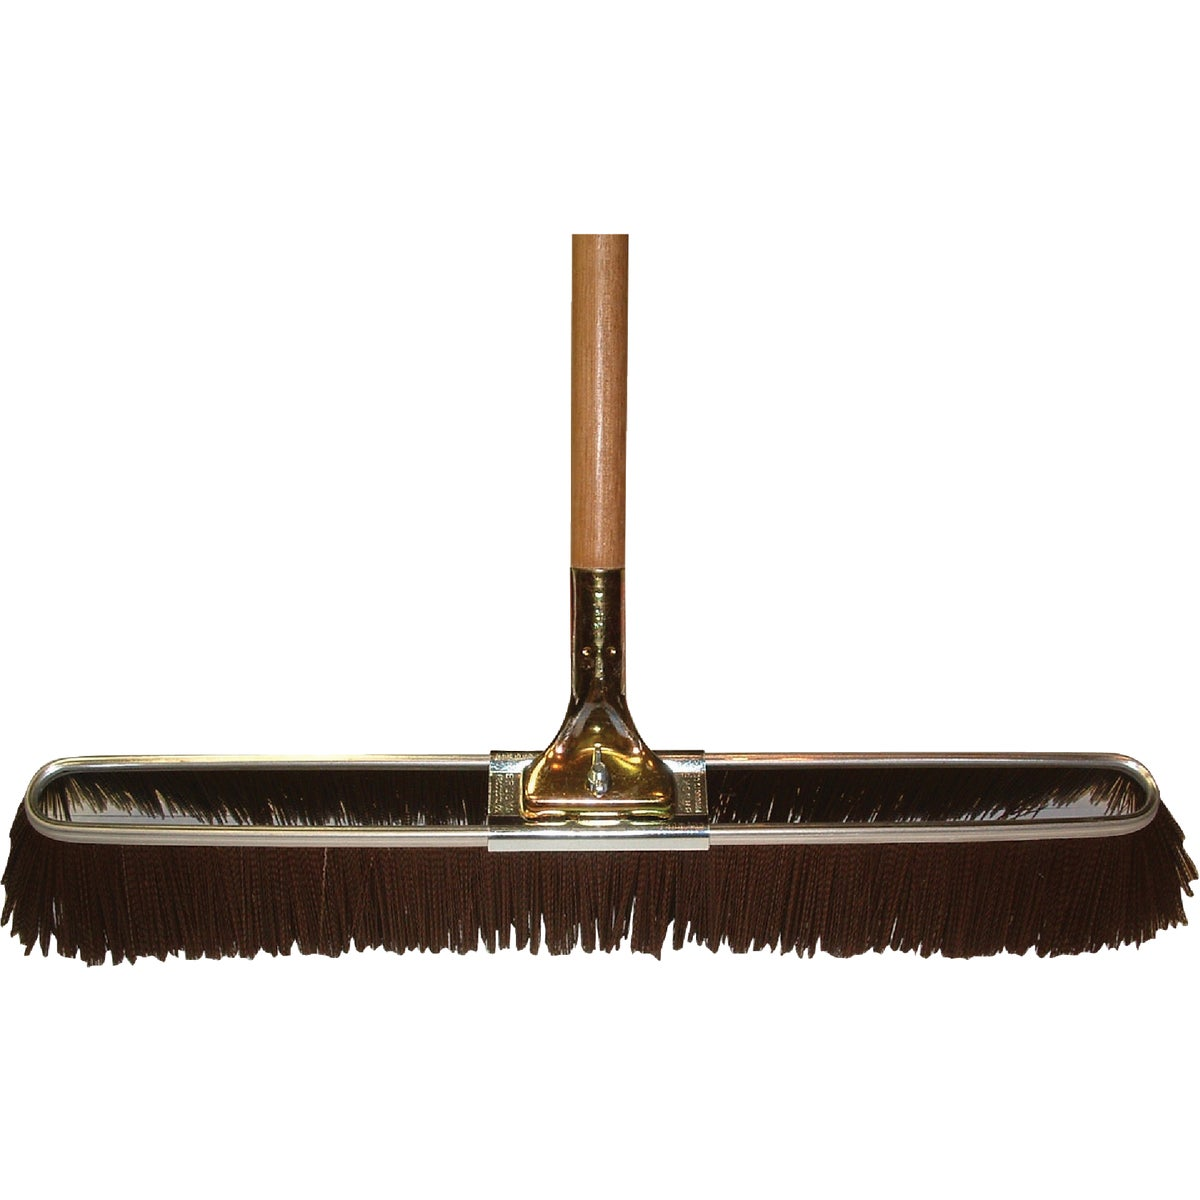 "23"" COARSE SWEEP BROOM - 2174-CW-4 by Bruske Products"